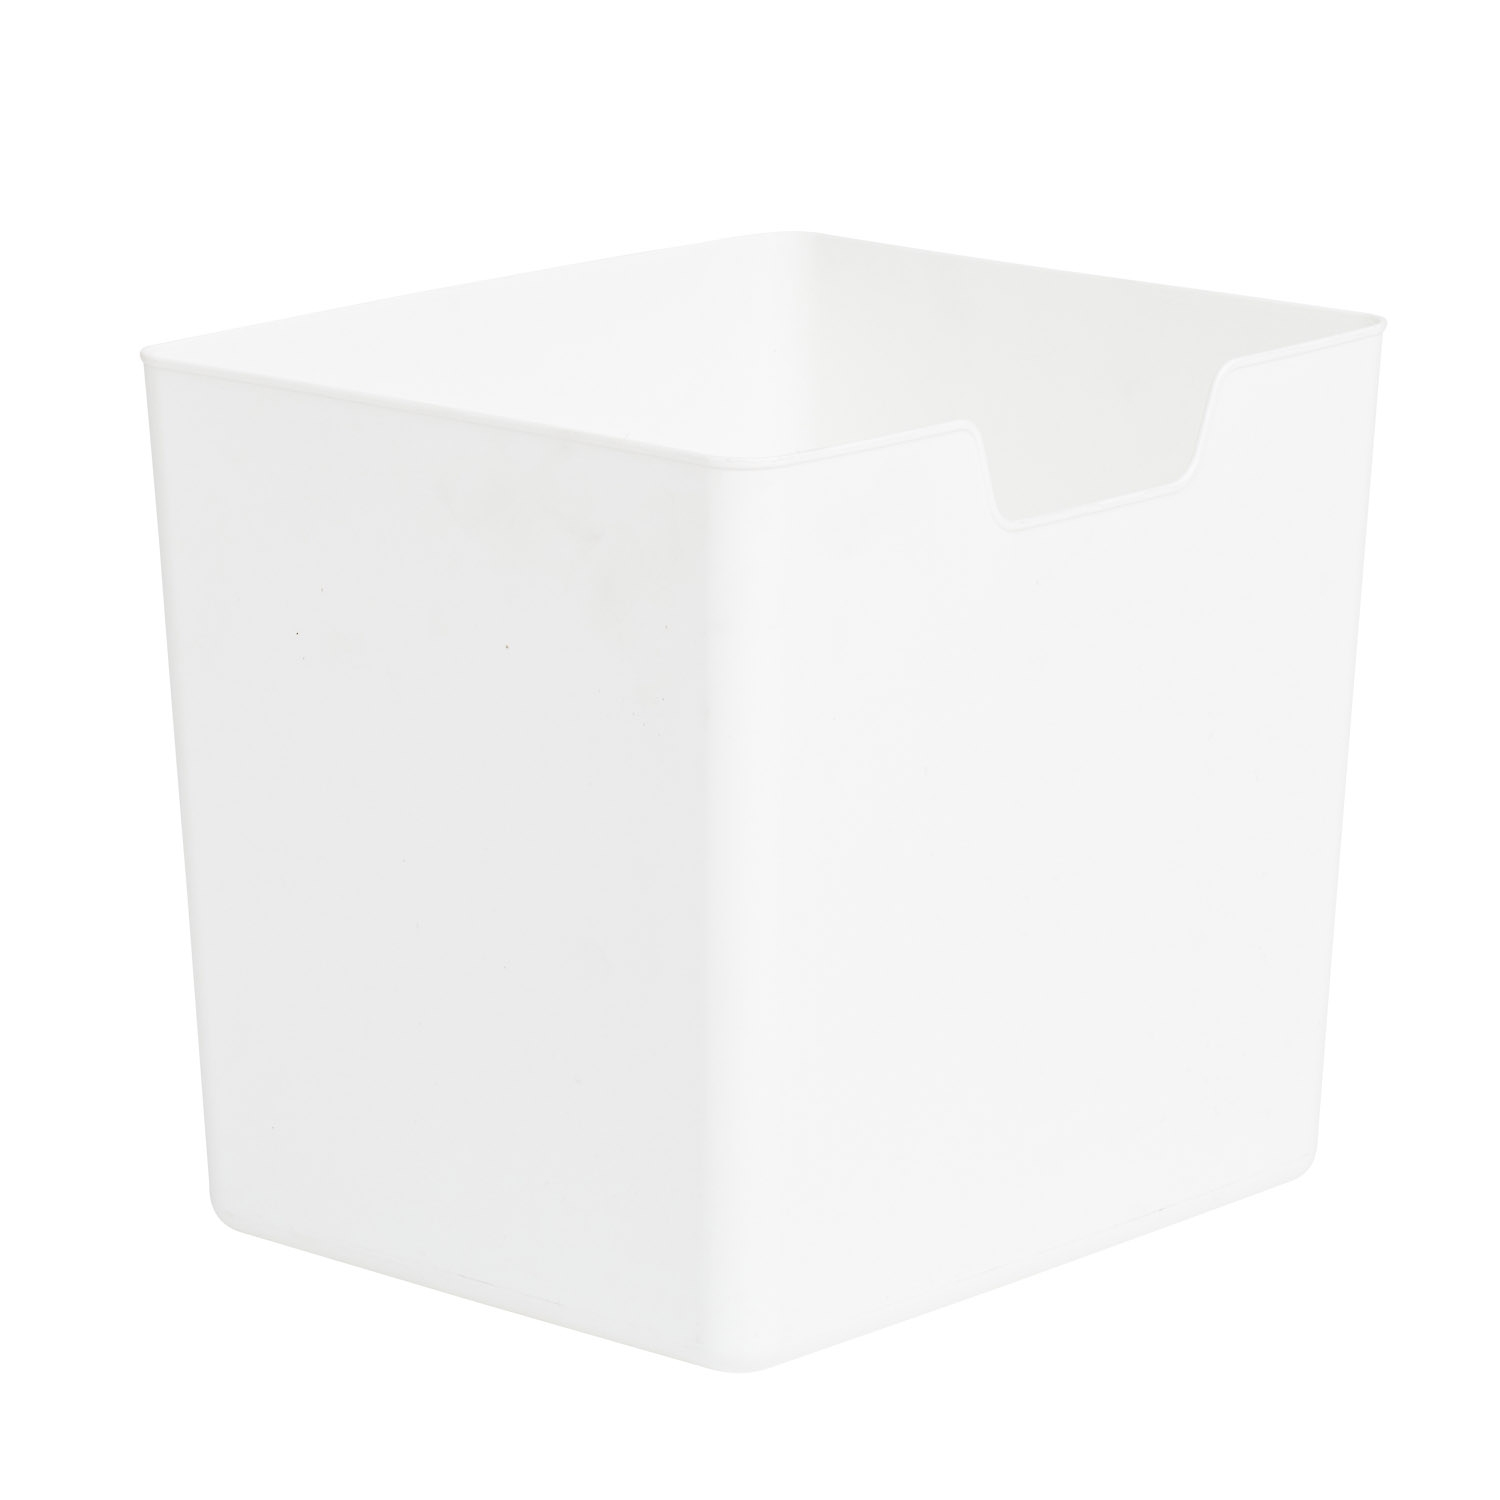 cube insert white from storage box. Black Bedroom Furniture Sets. Home Design Ideas